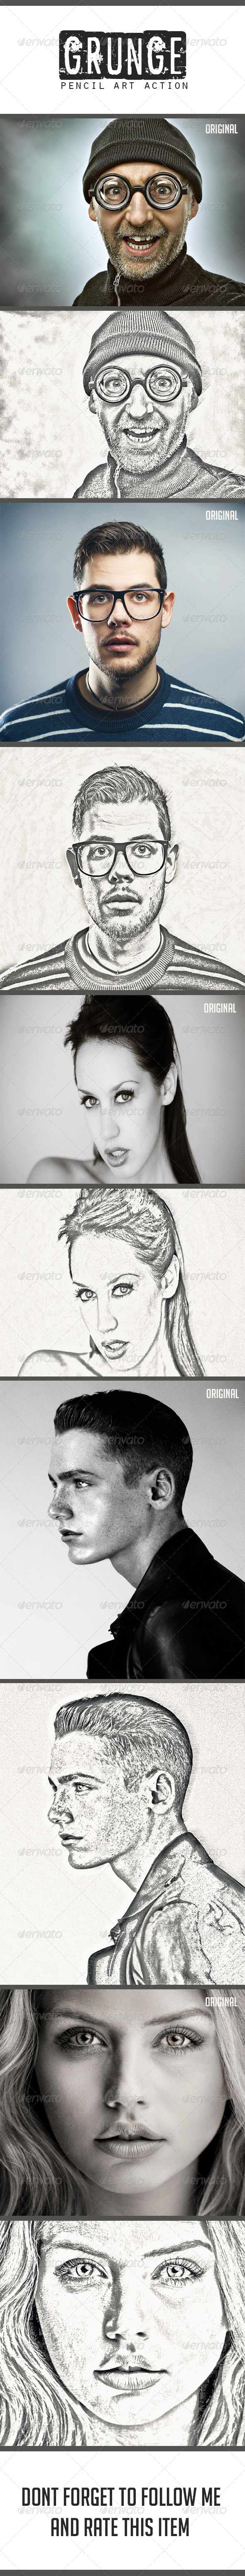 GraphicRiver Grunge Pencil Art Action 8526570